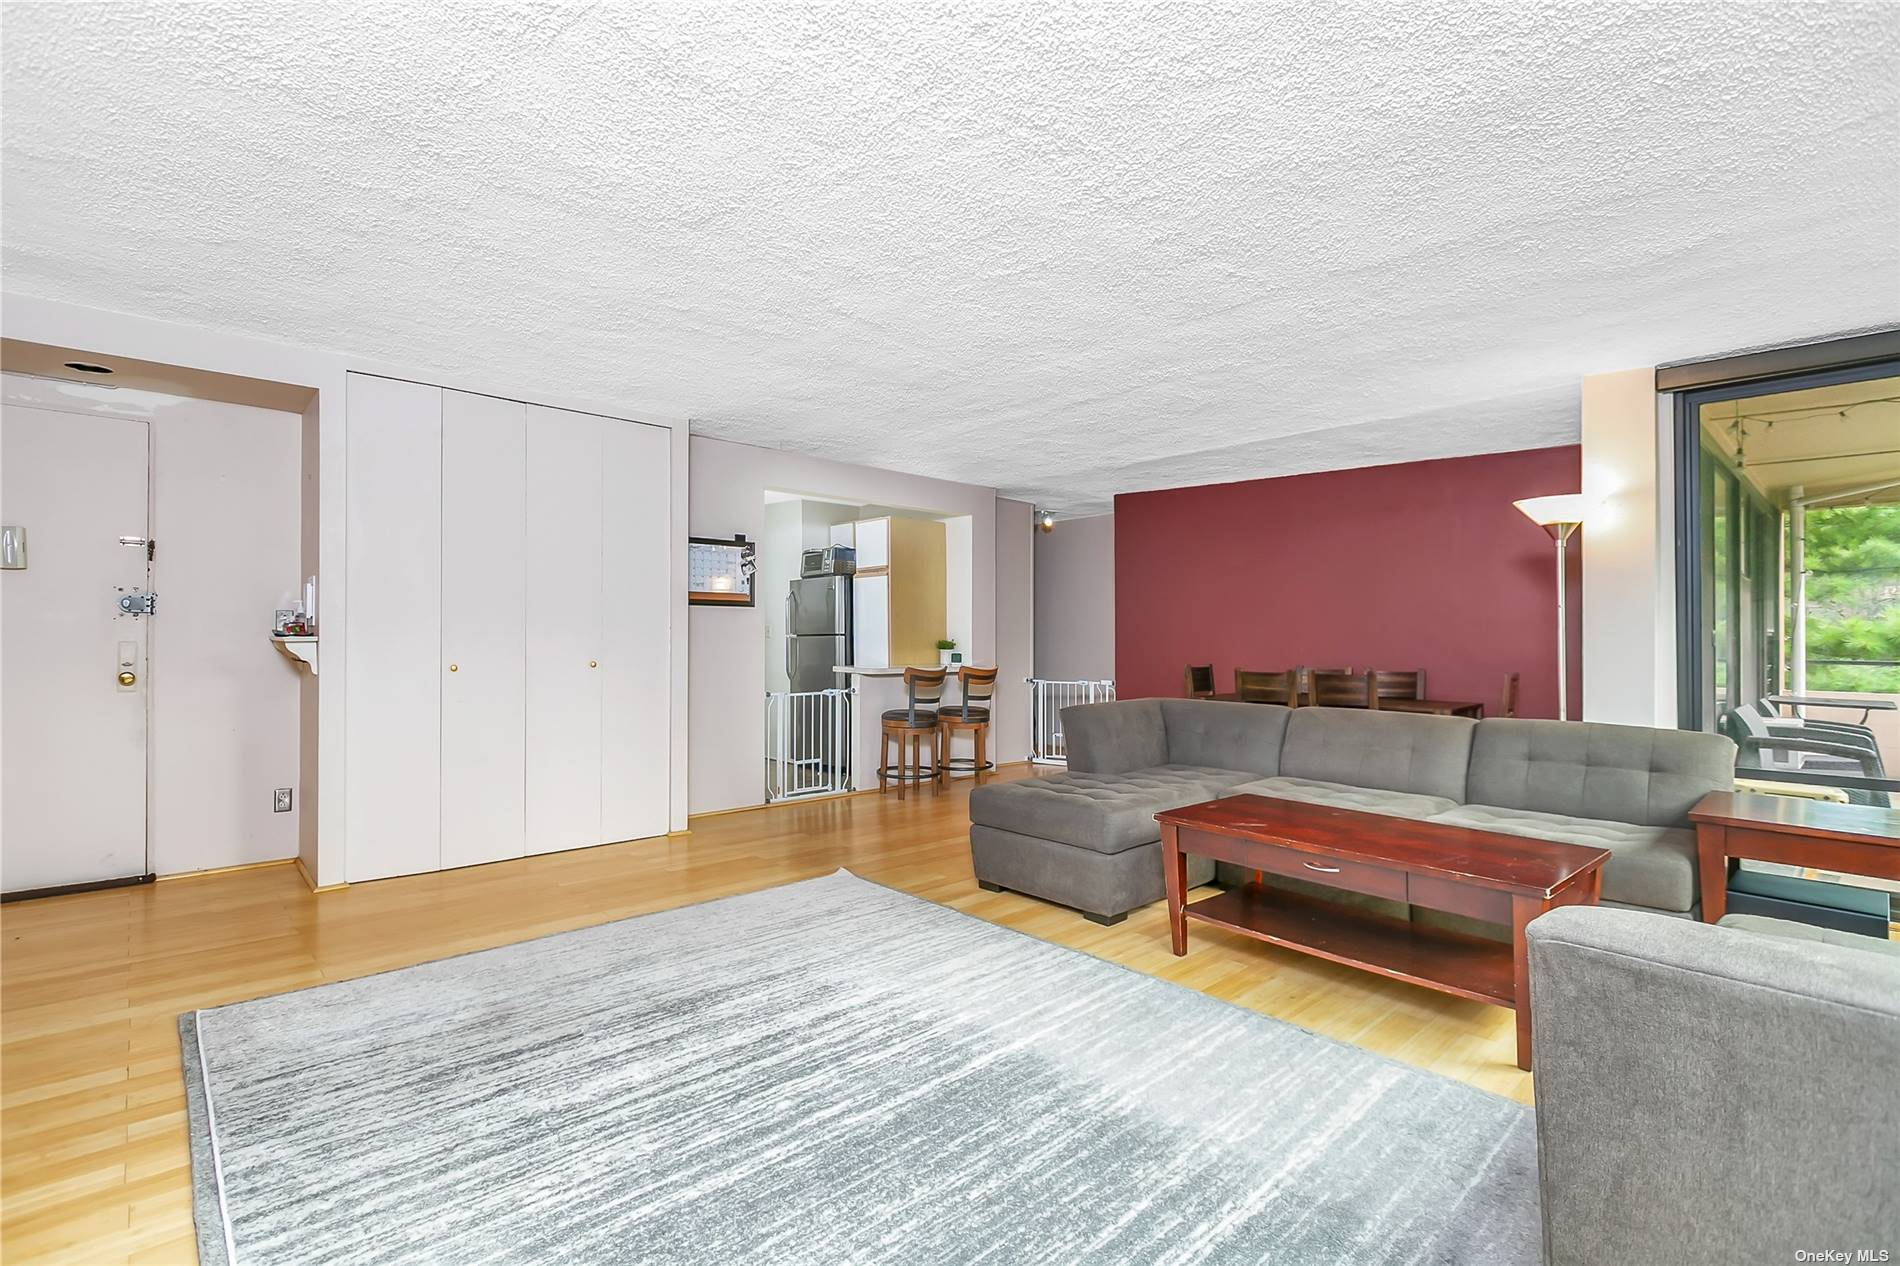 lovely one bedroom with bamboo floors throughout...updated kitchen and bath...Ceiling to floor windows throughout...steps from pool and playground...complex has 2 pools, 3 tennis courts, 2 playgrounds, gym and cafe...prime parking space included in sale.